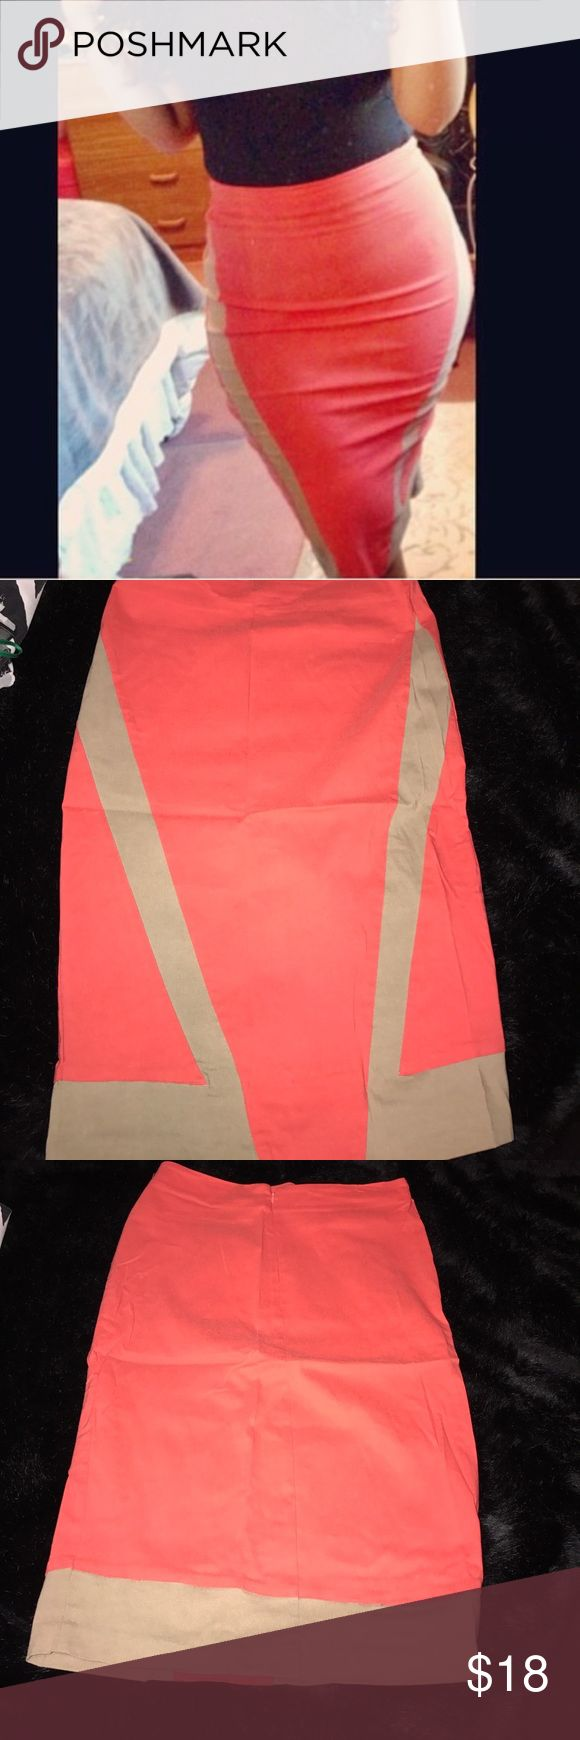 """Kardashian Kollection coral pencil skirt - XL Worn once. Beautiful tan and coral polyester skirt. Size would be equal to 10-12 but it's very stretchy. Skirt is 28"""" long. NO TRADES Kardashian Kollection Skirts Pencil"""